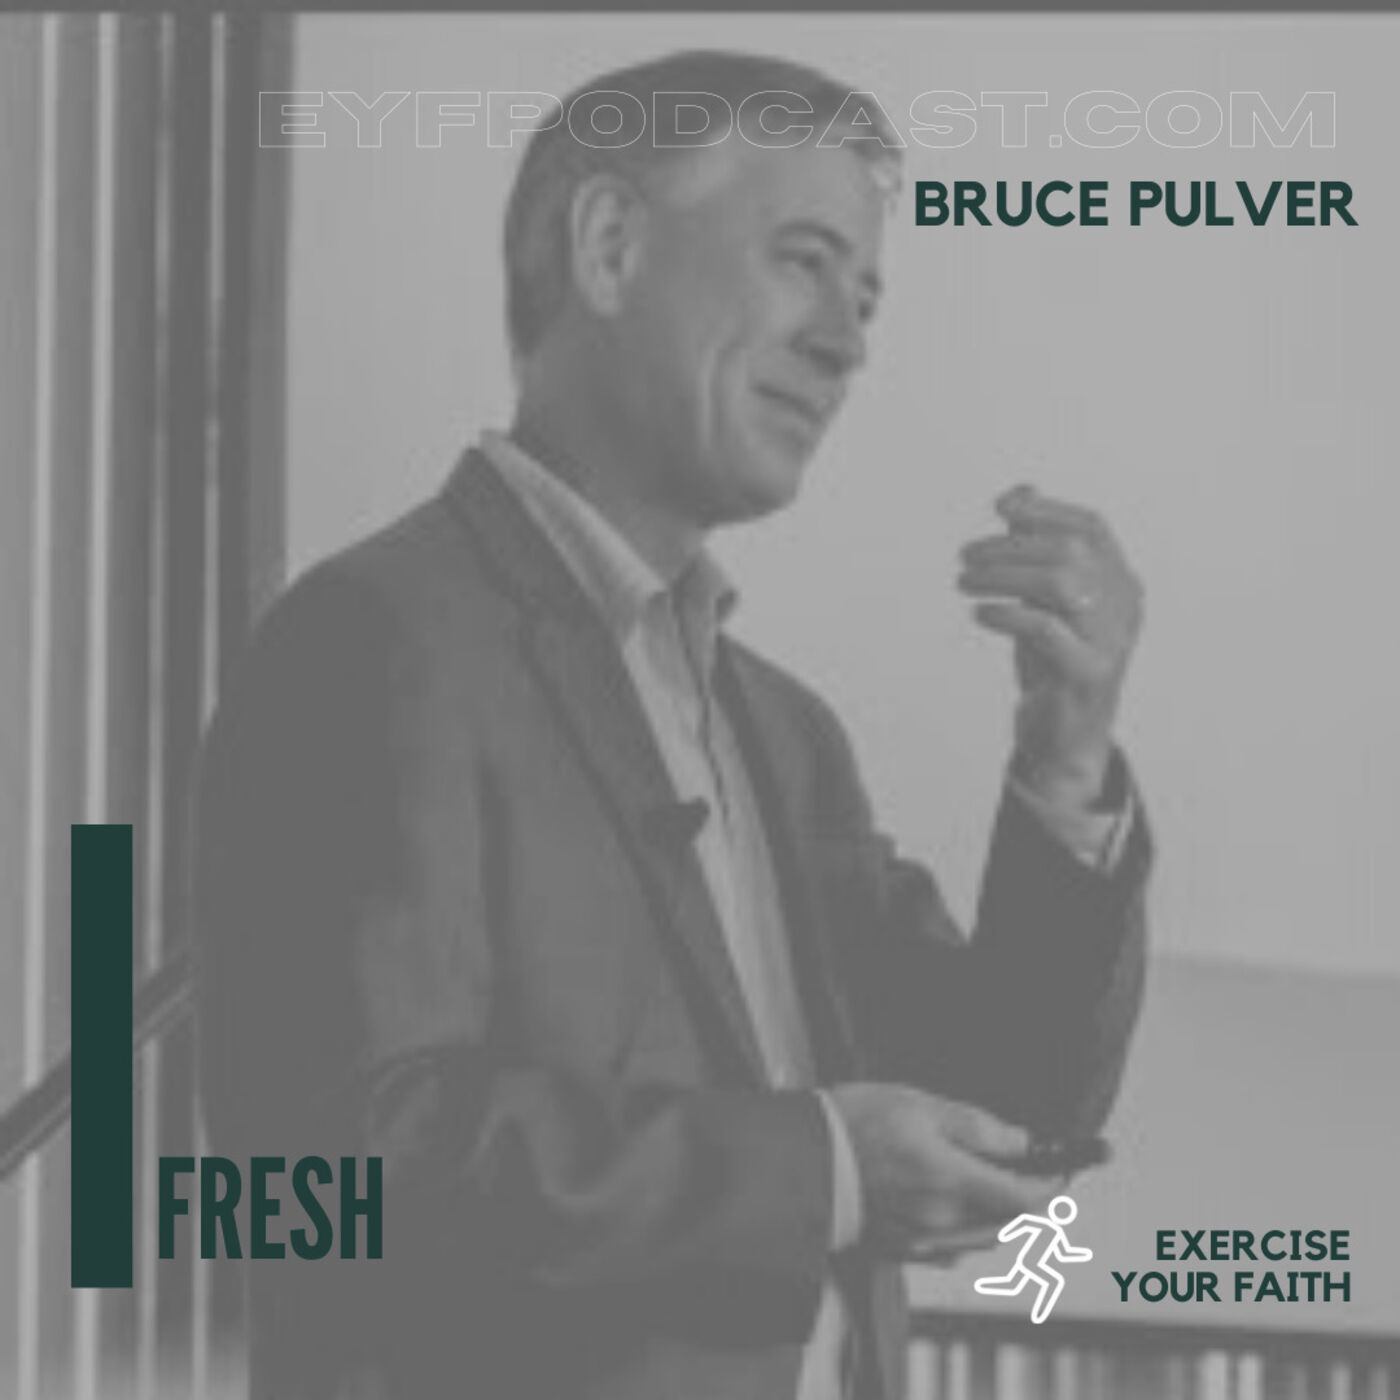 EYFPodcast- Exercise Your Faith today with Bruce Pulver by allowing God to do a FRESH work in you!